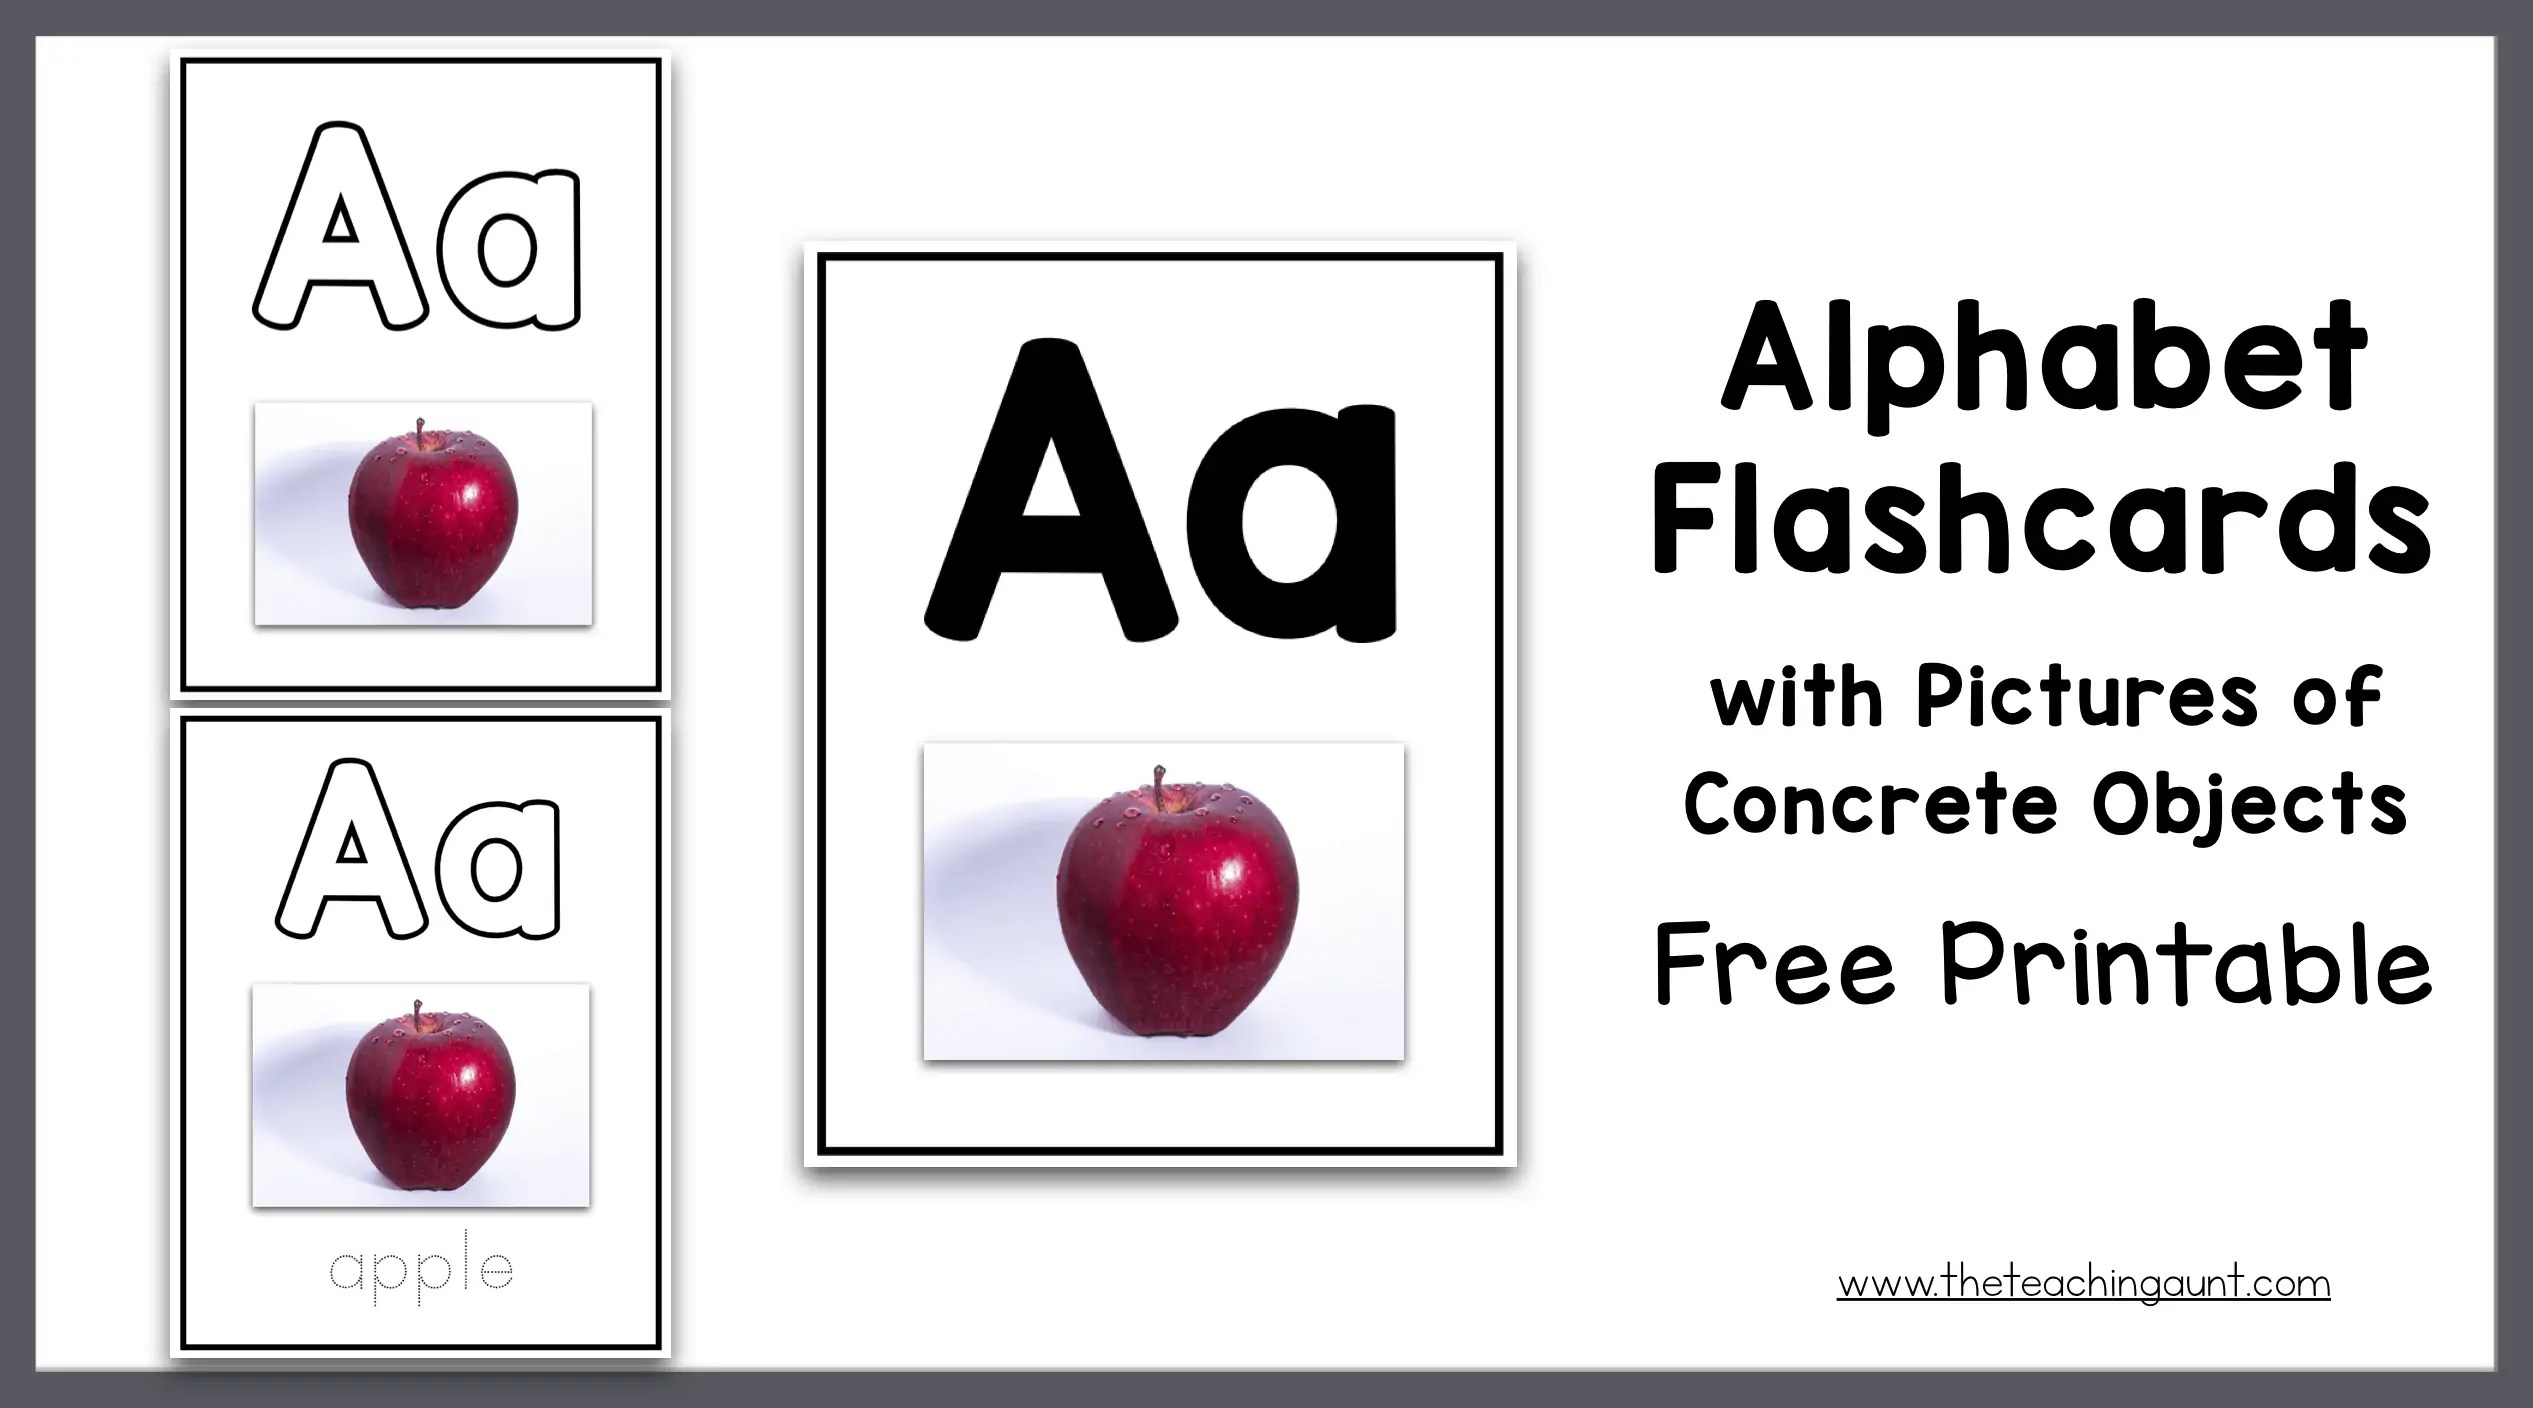 picture relating to Free Printable Abc Flashcards named Alphabet Flashcards with Images of Concrete Items - The